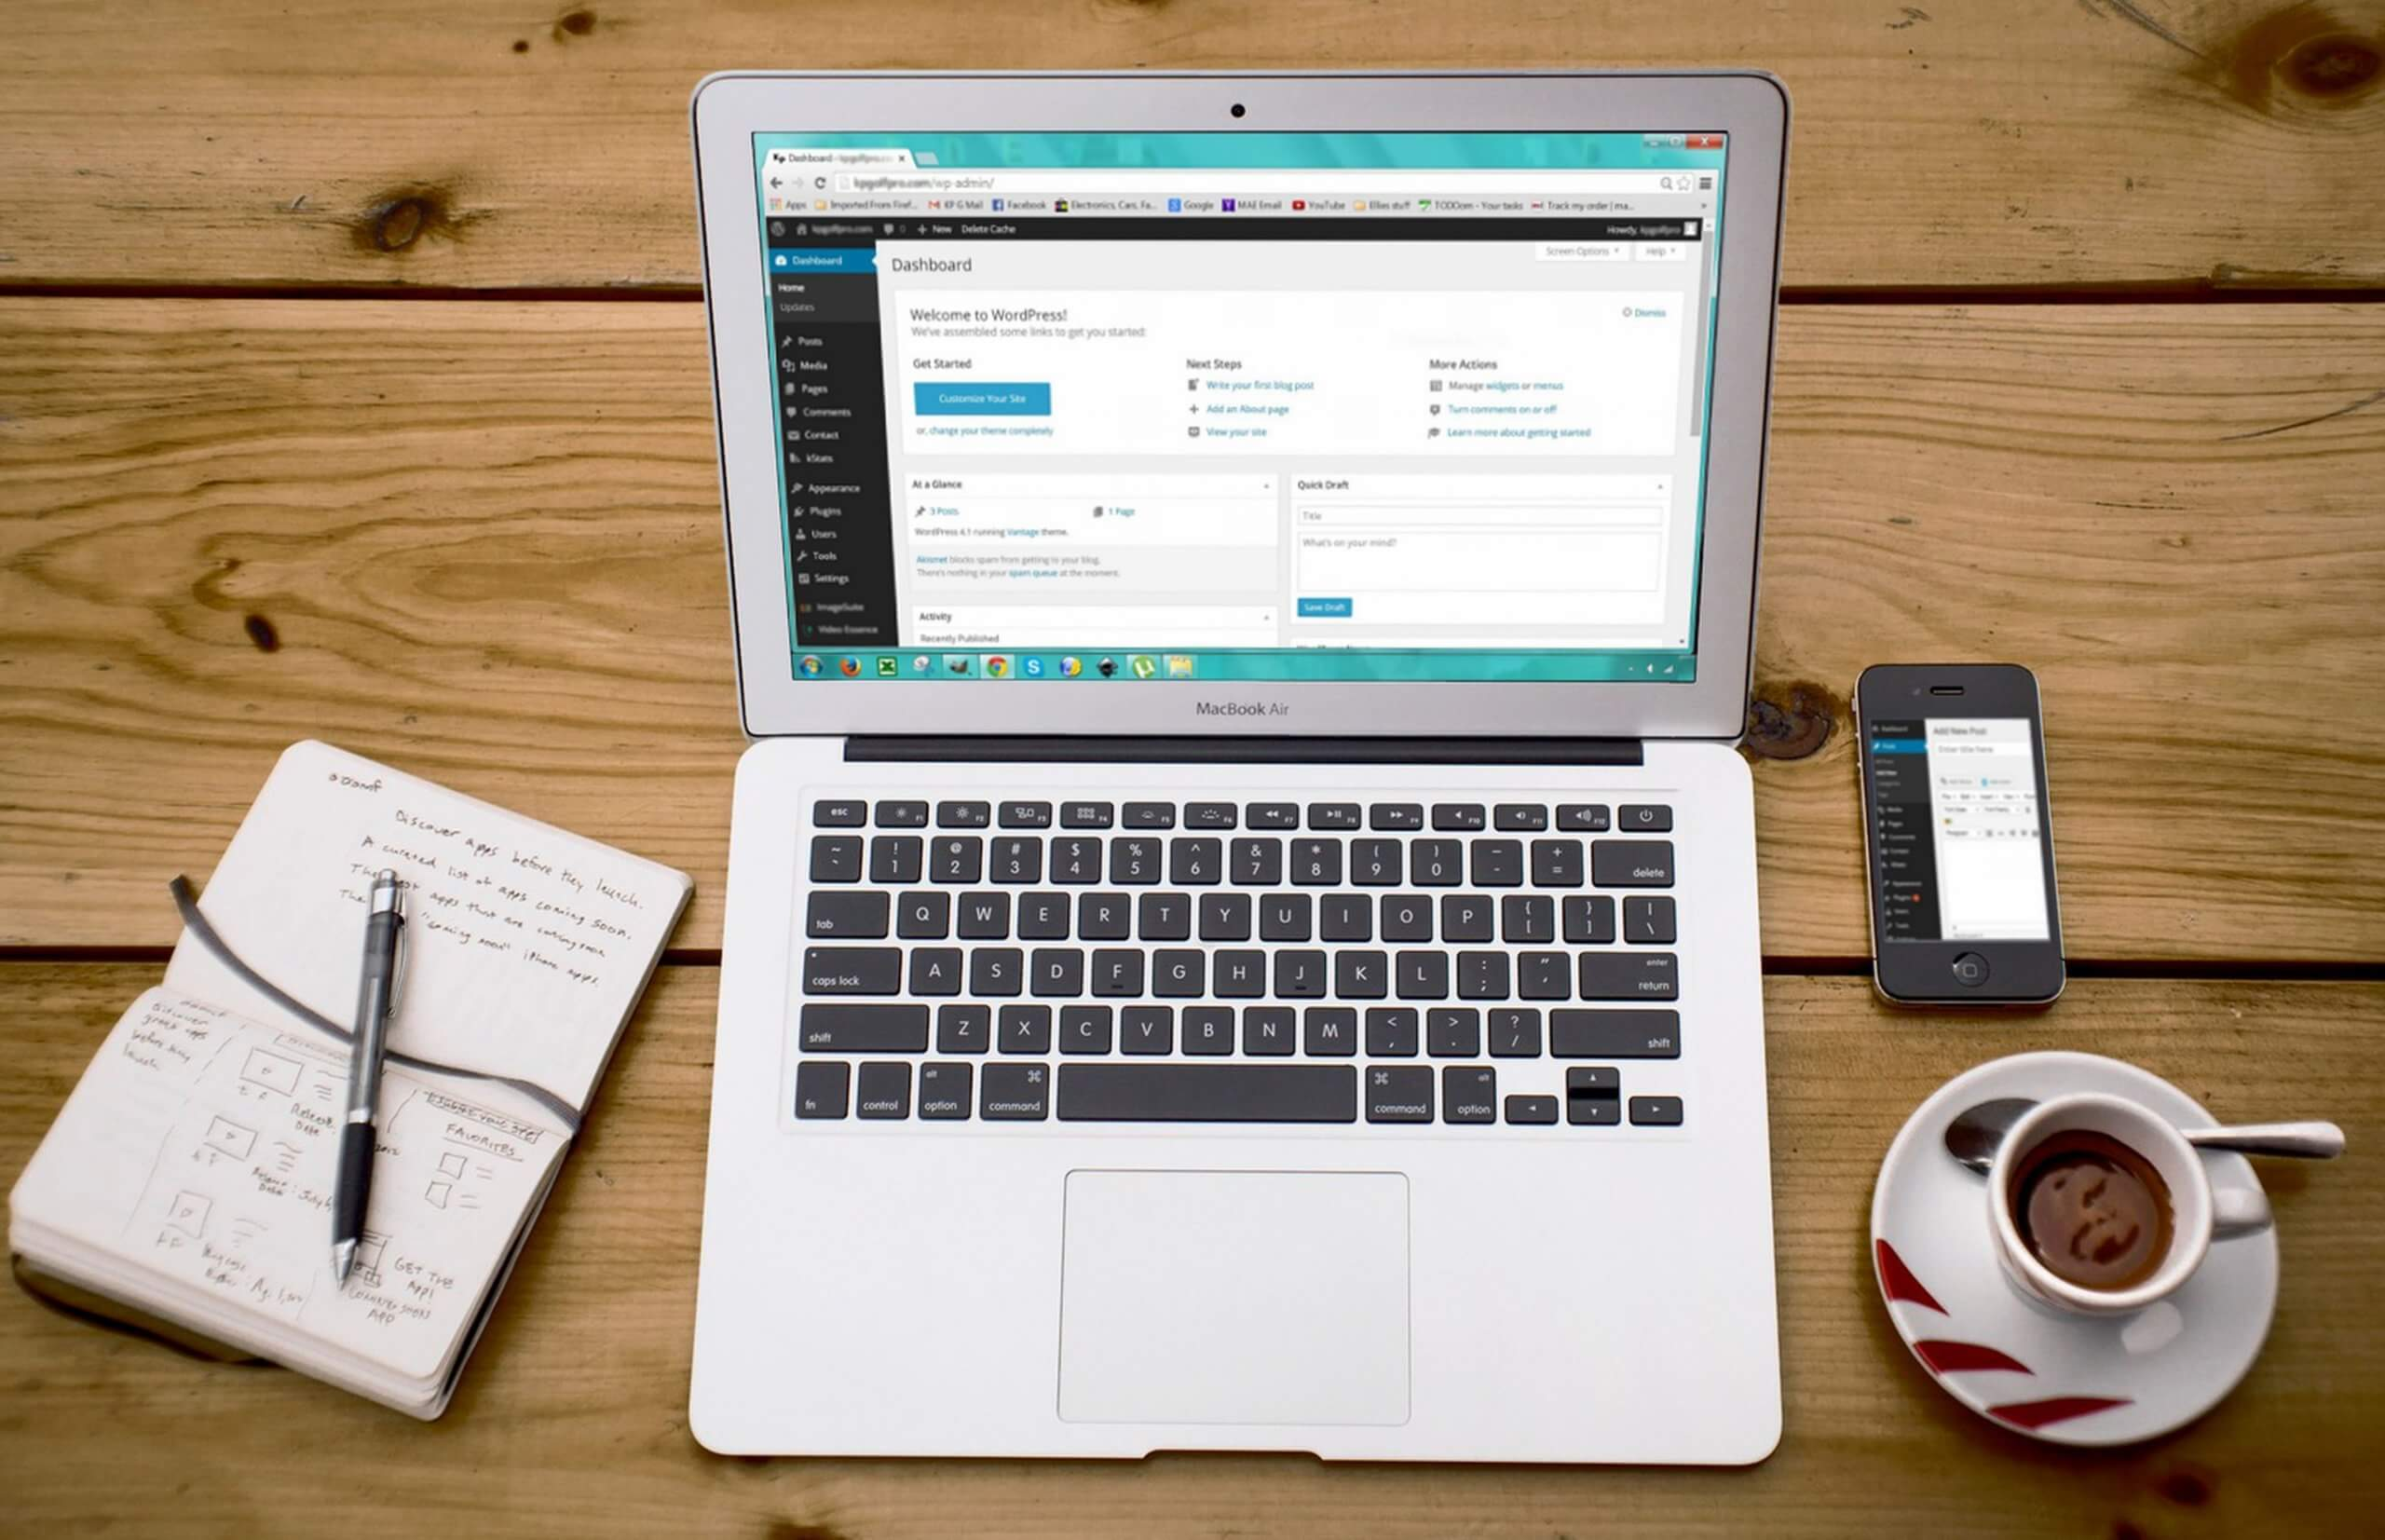 A work area on a wooden table with WordPress loaded up on their Macbook